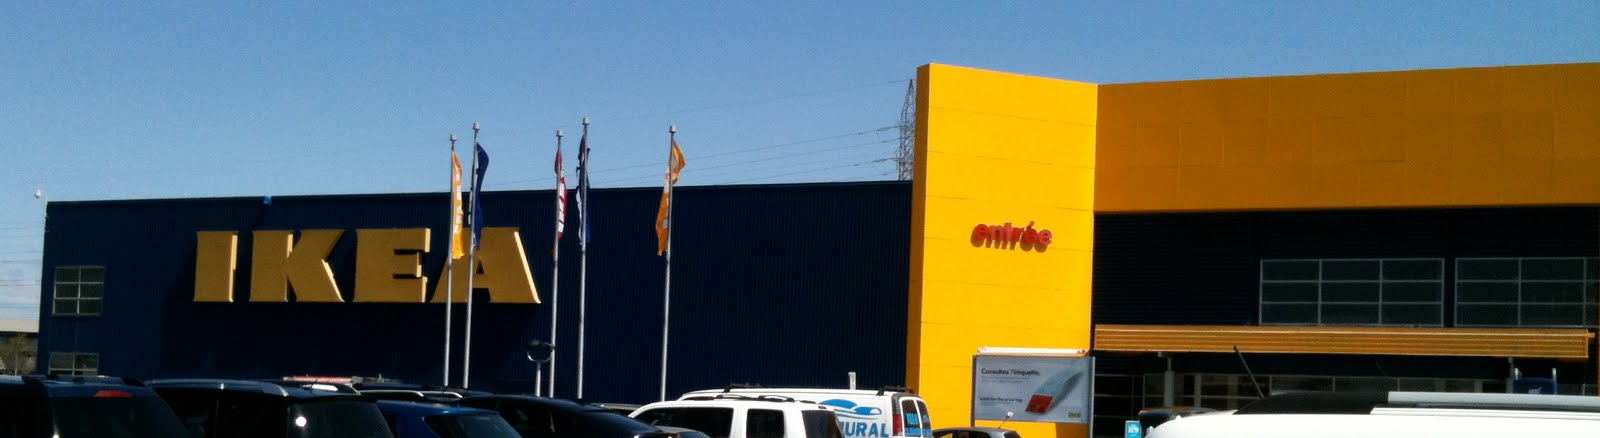 Ikea pittsburgh for Ikea store hours philadelphia